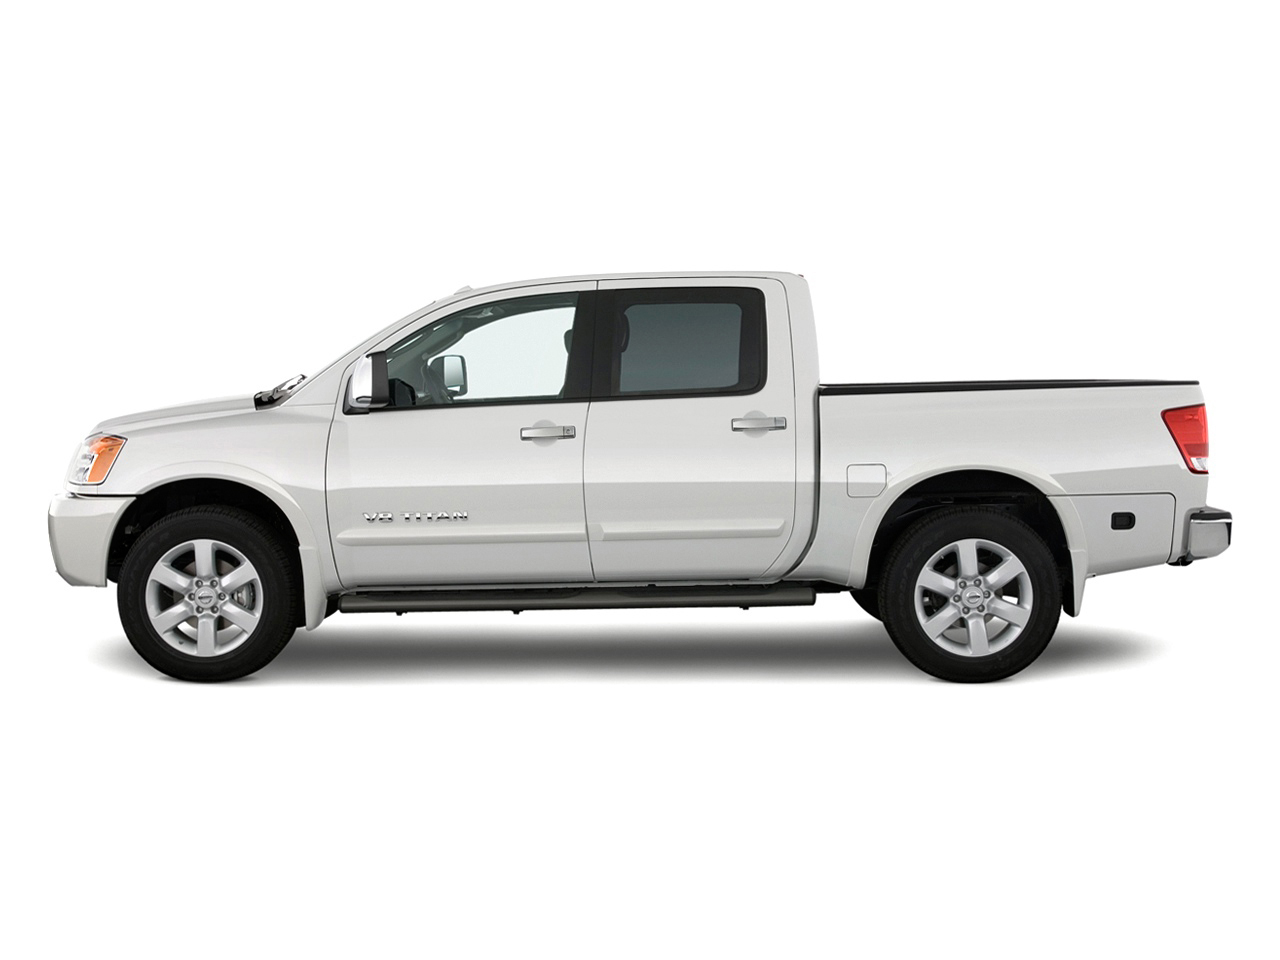 2012 nissan titan review ratings specs prices and. Black Bedroom Furniture Sets. Home Design Ideas